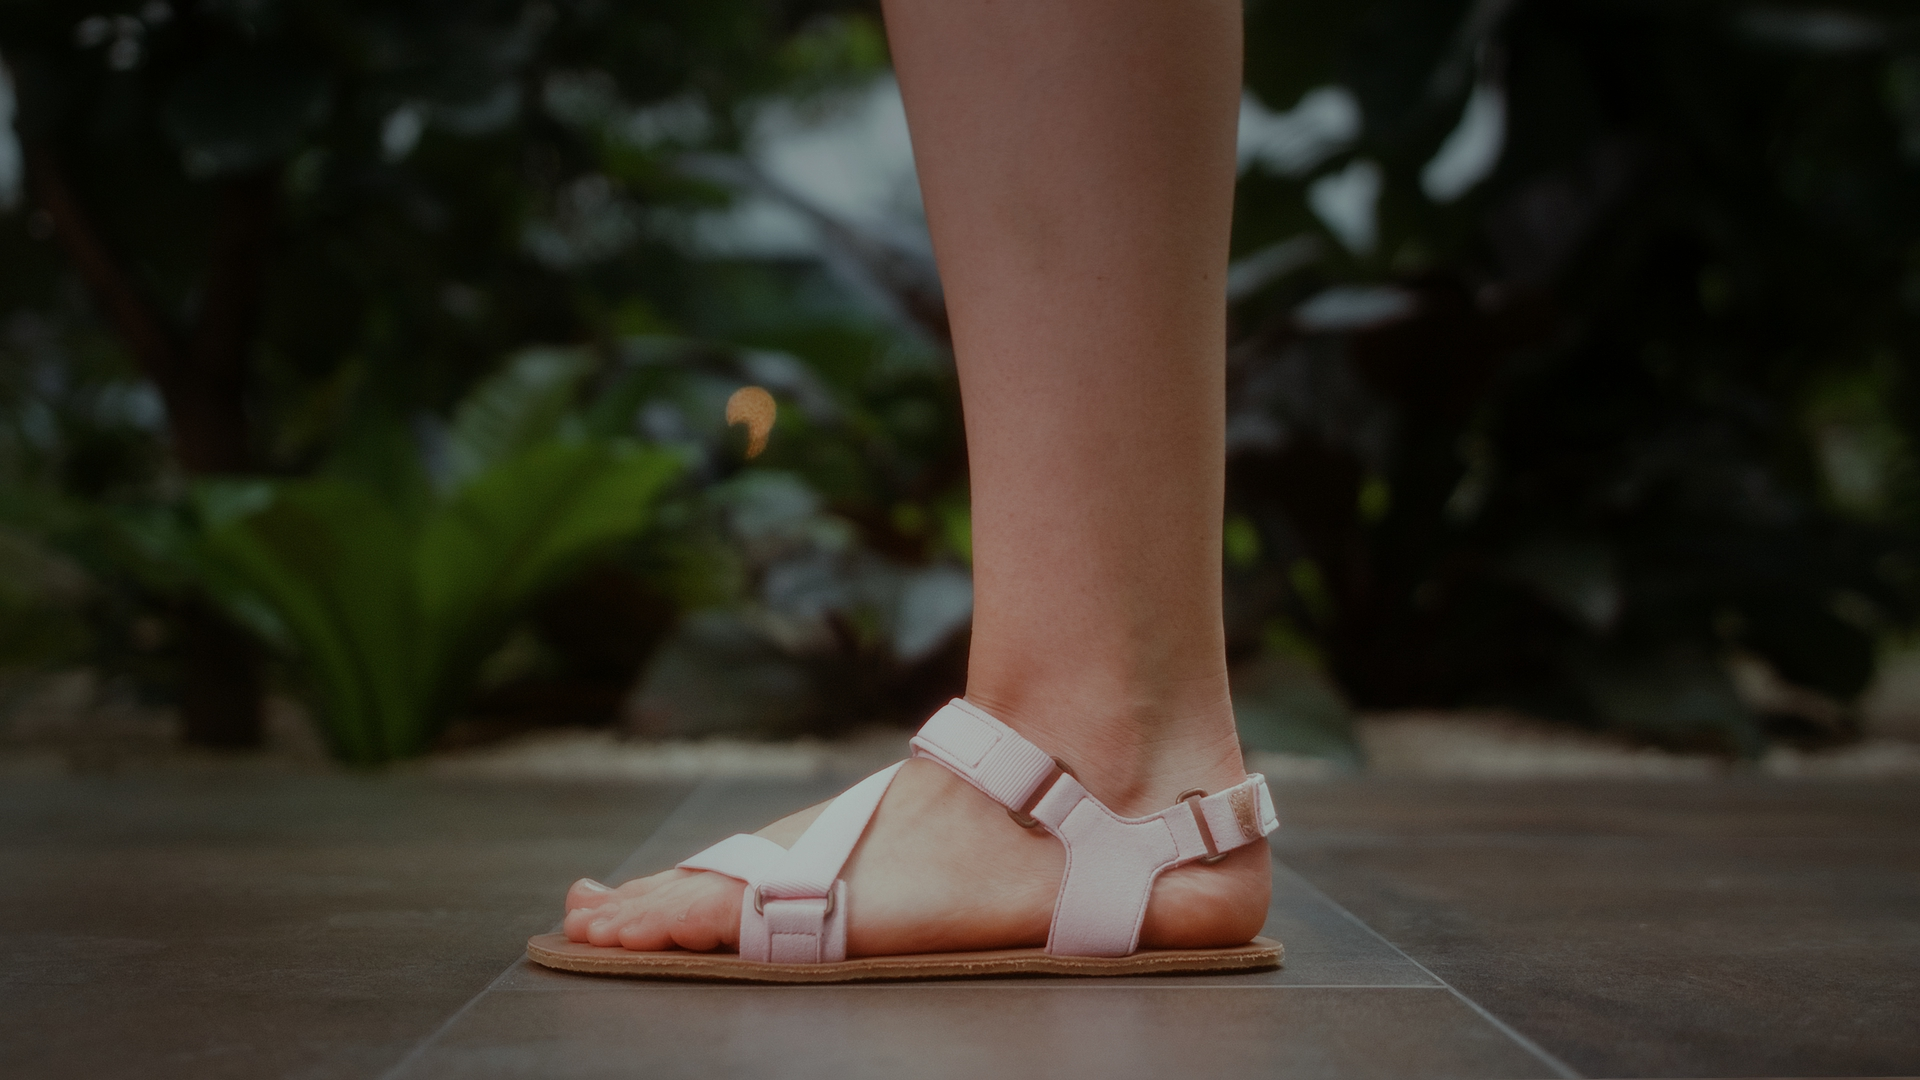 Experience the barefoot comfort - Switch to Be Lenka barefoot.